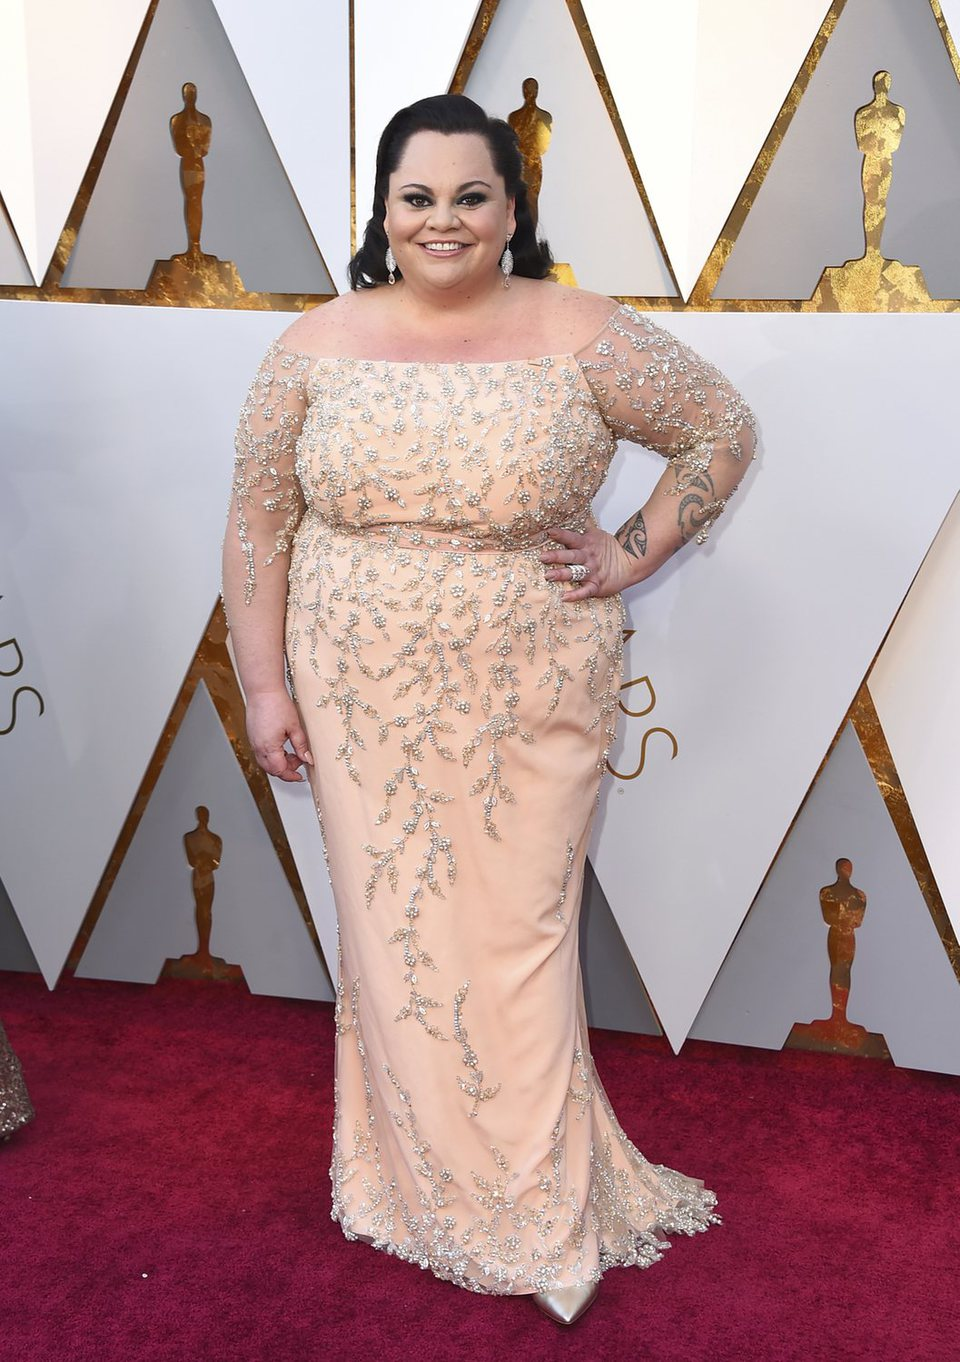 Keala Settle at the red carpet of the Oscars